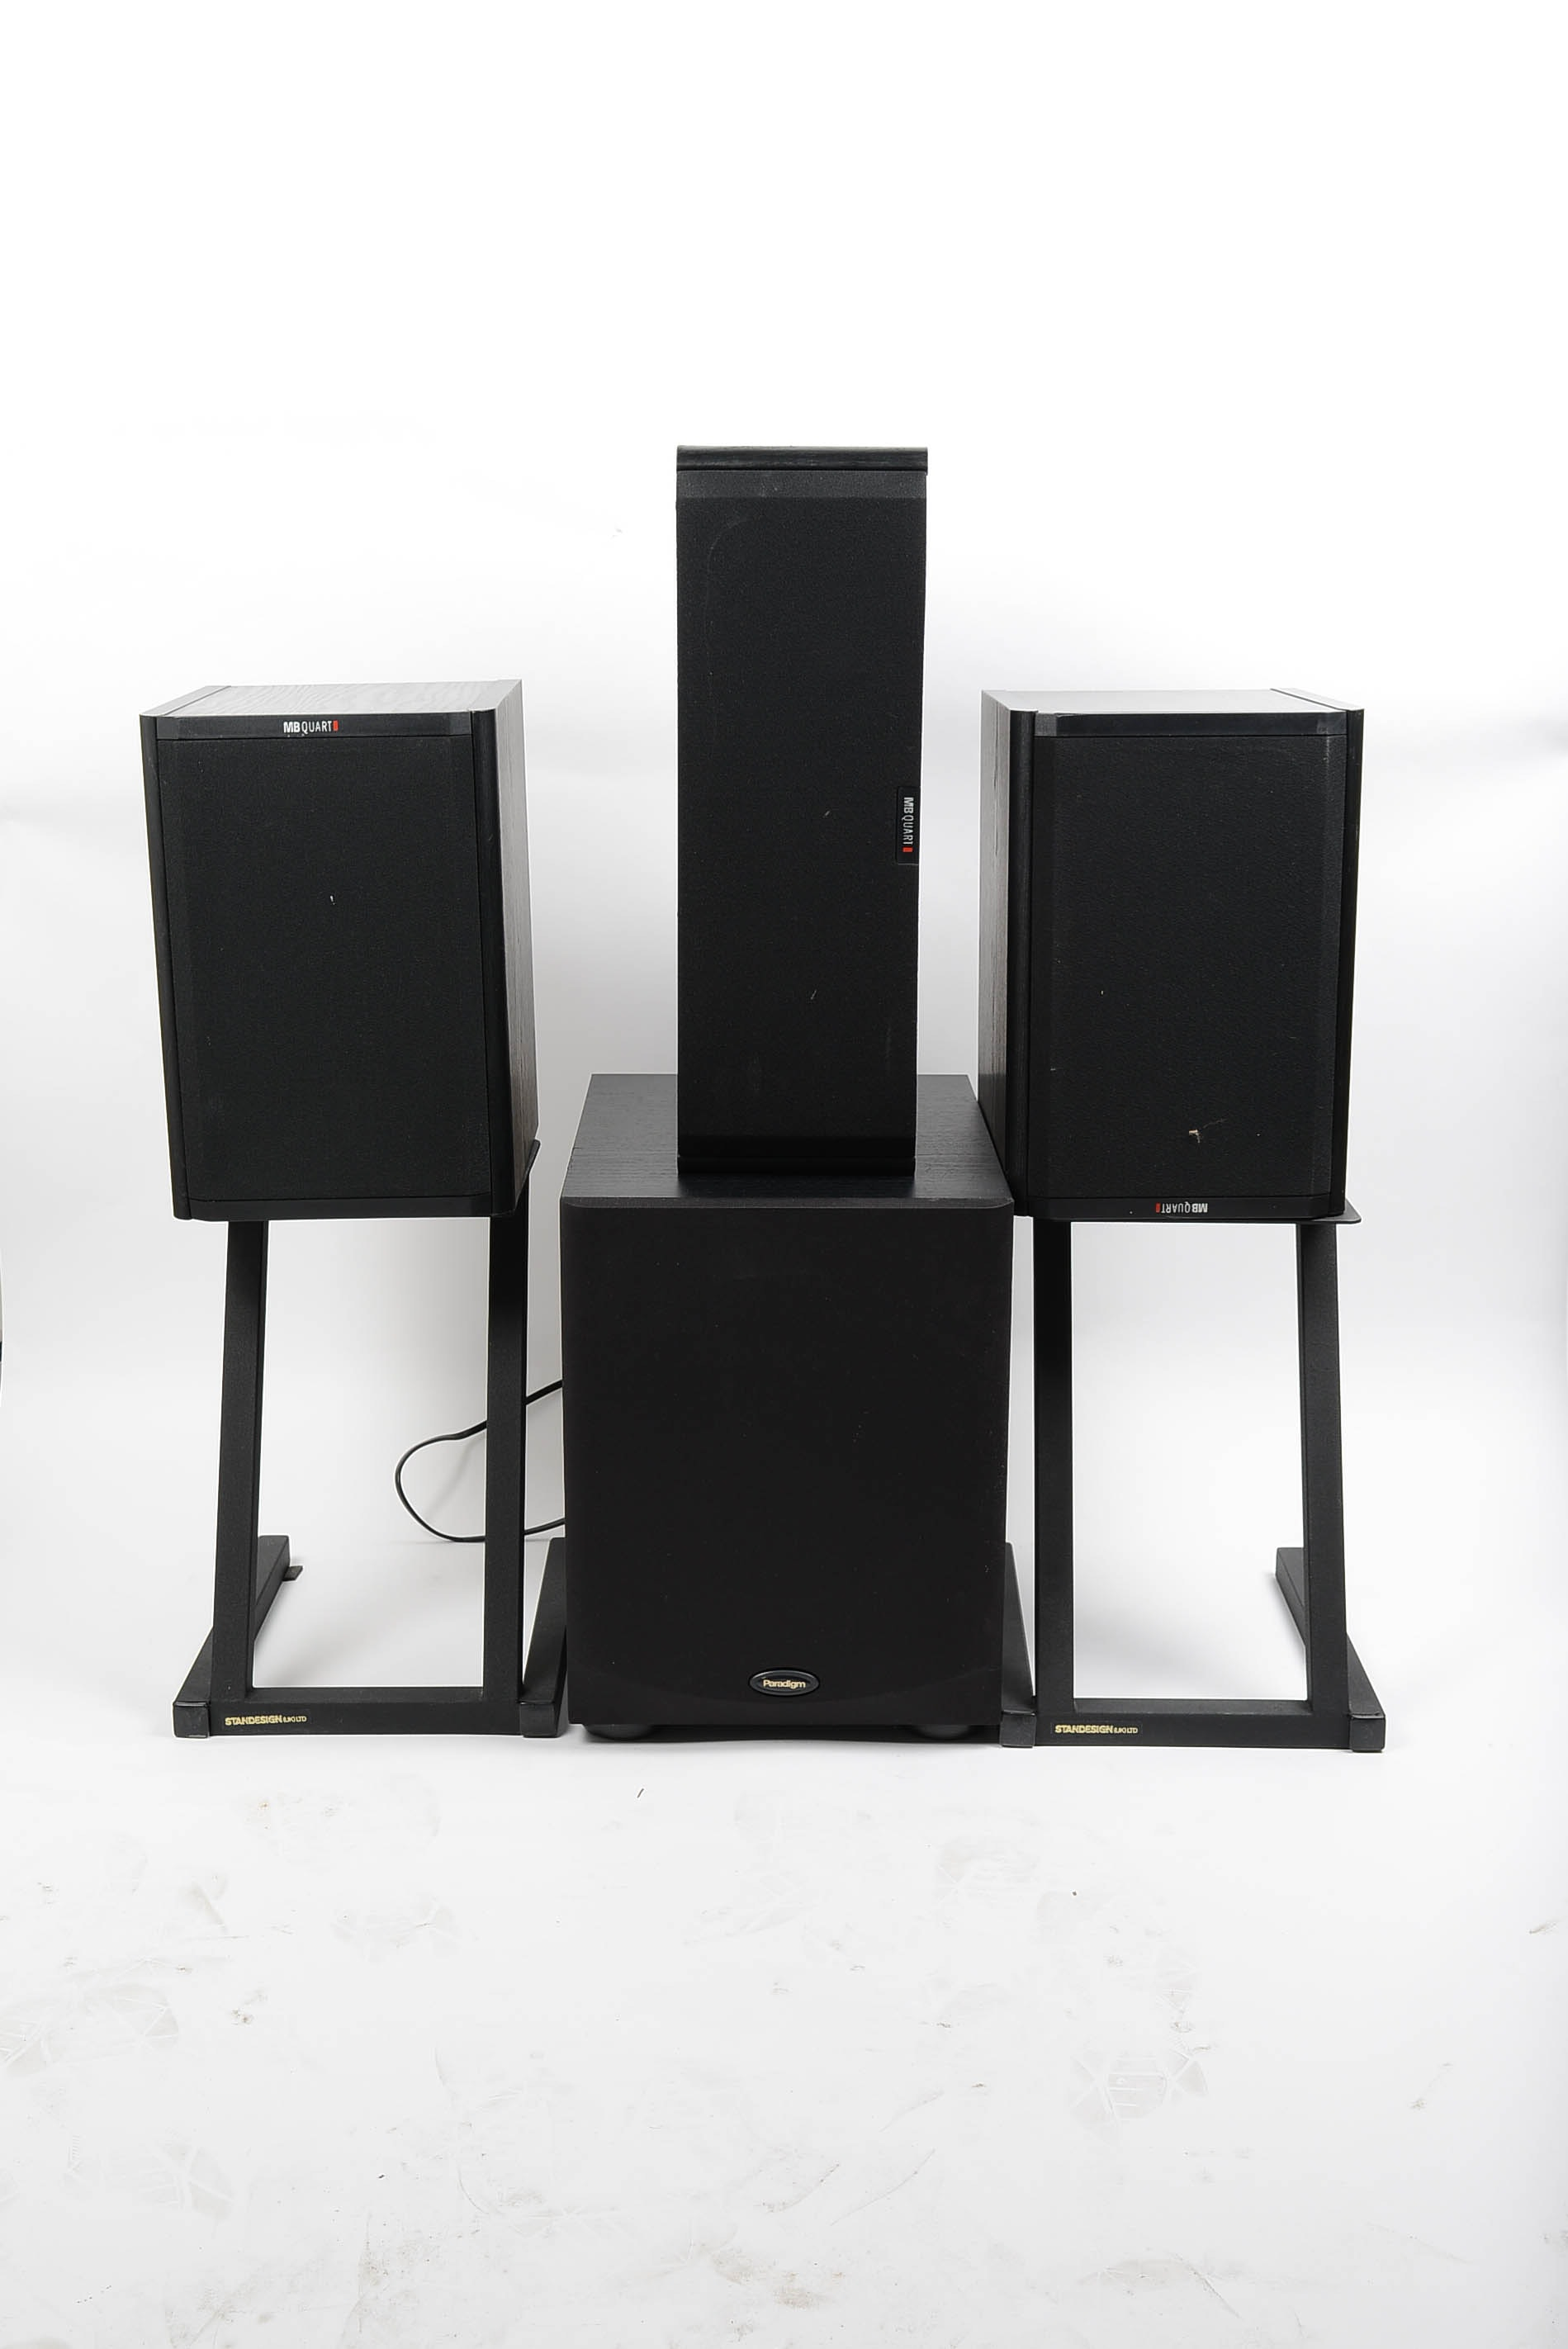 MB Quart Speakers and Paradigm Subwoofer